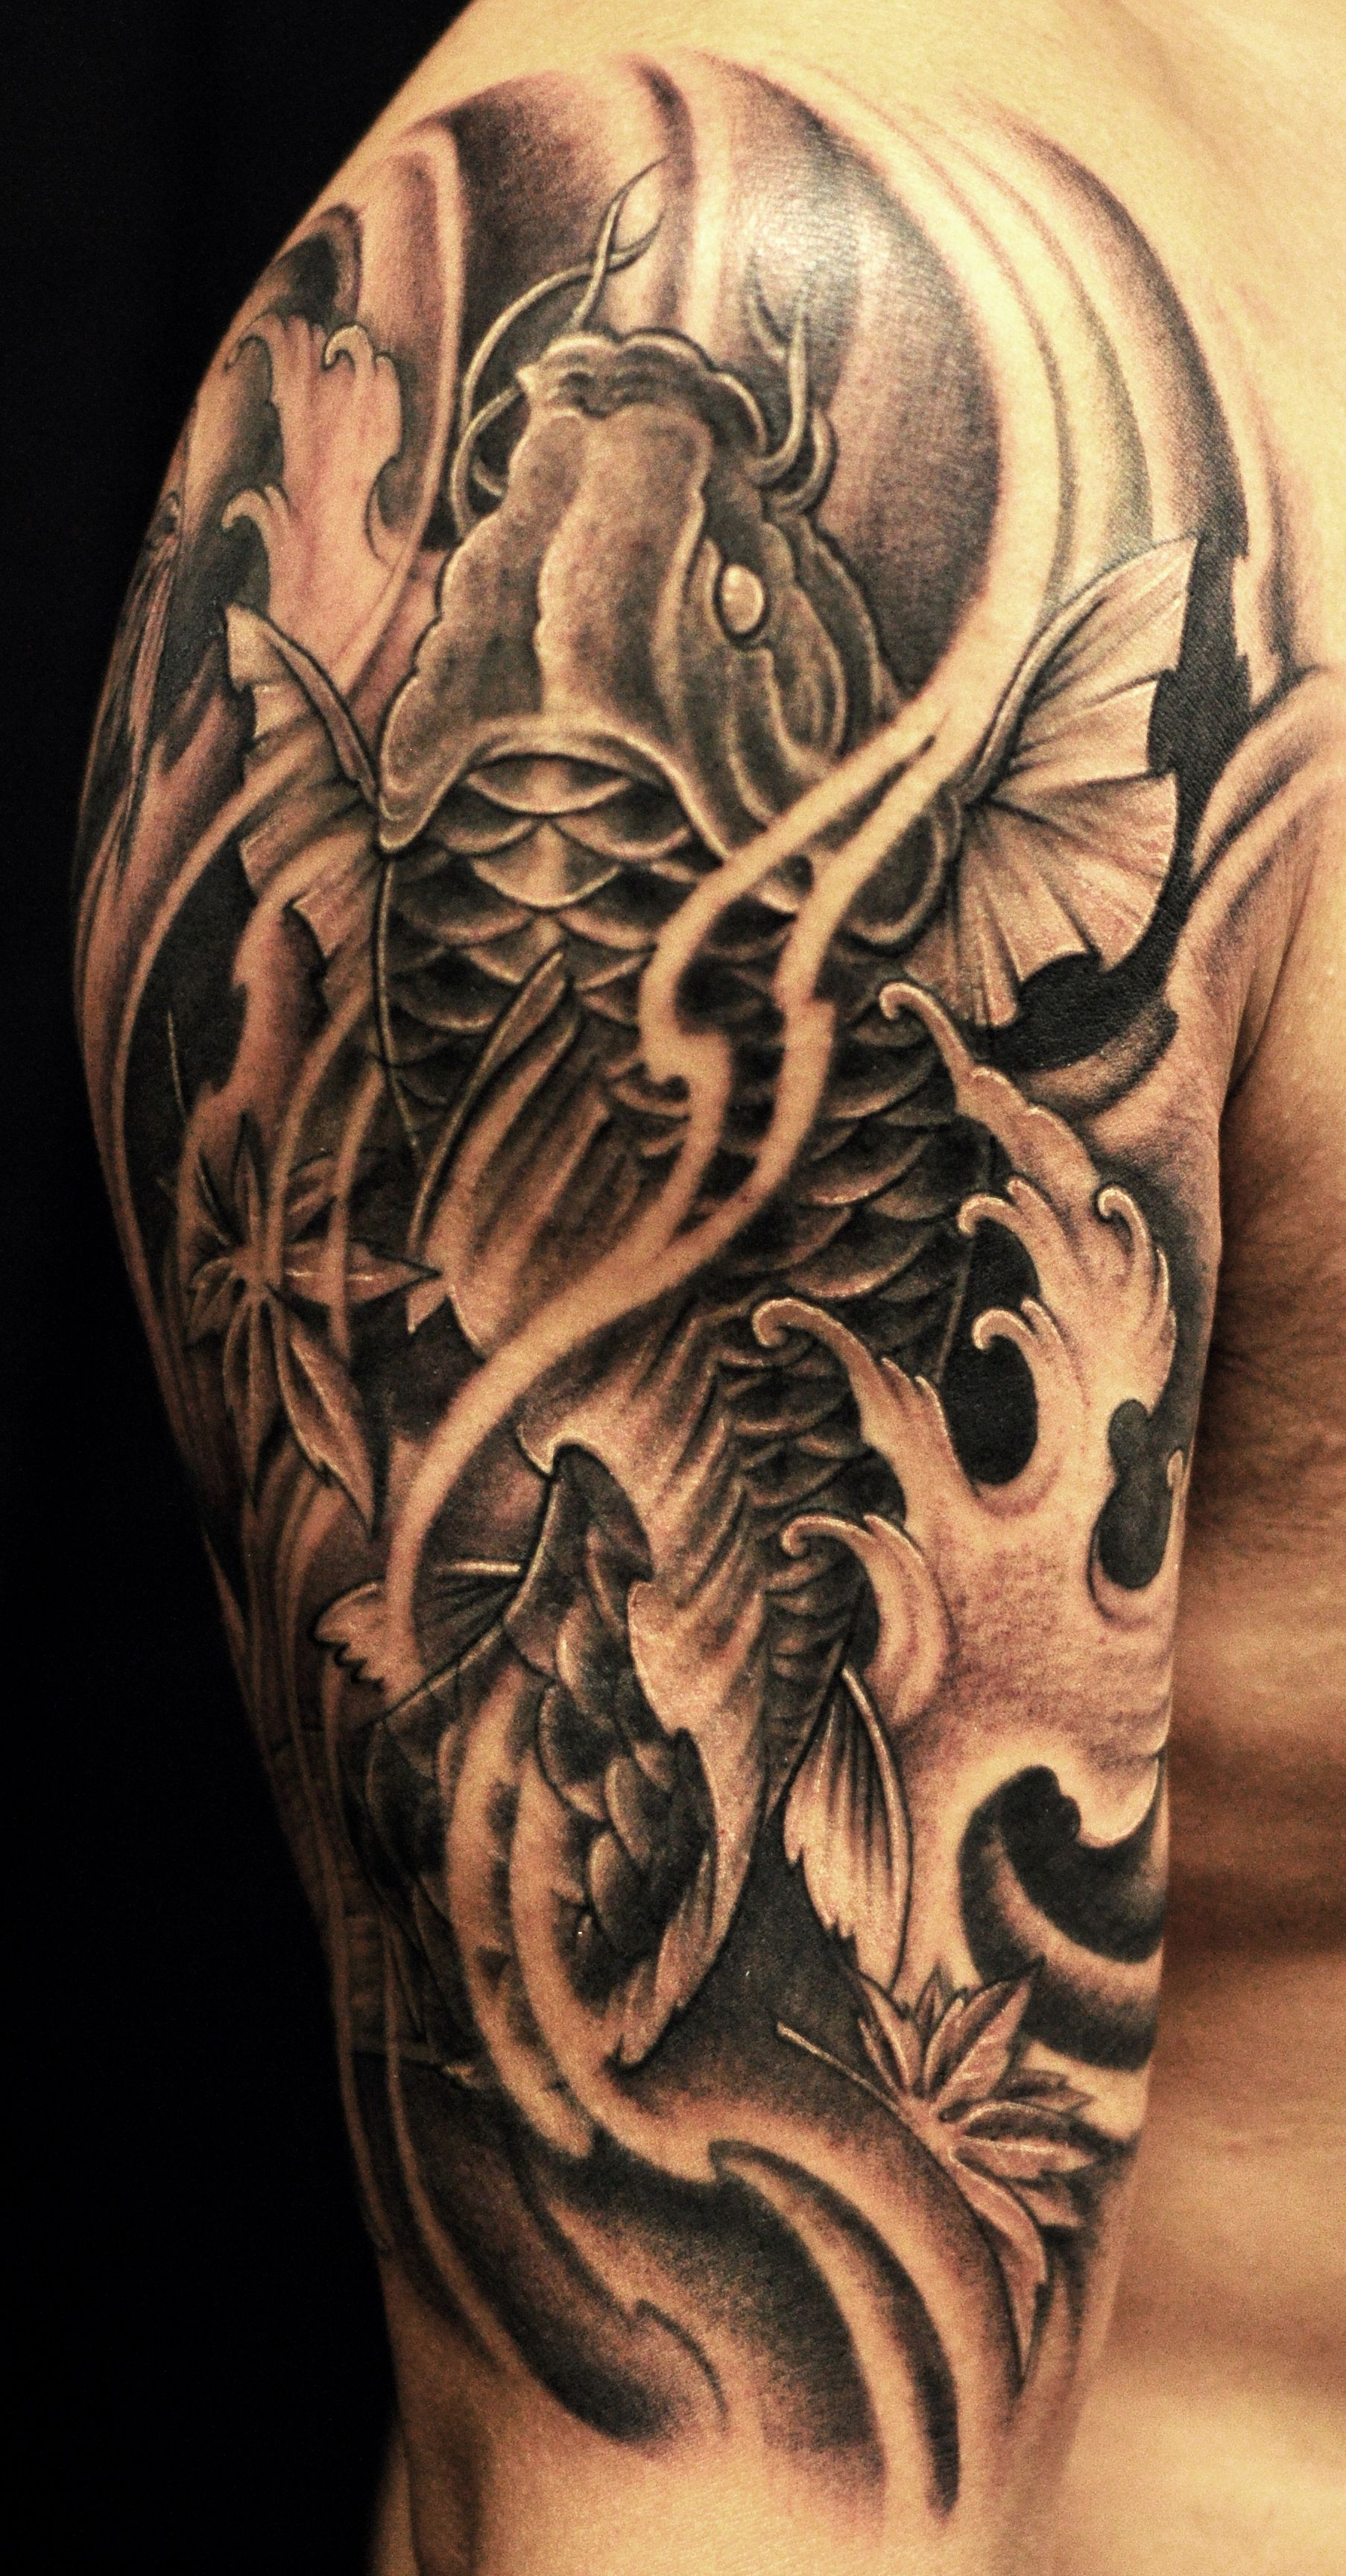 65 Japanese Koi Fish Tattoo Designs Meanings: Half Sleeve Black And Grey Koi Fish Tattoo